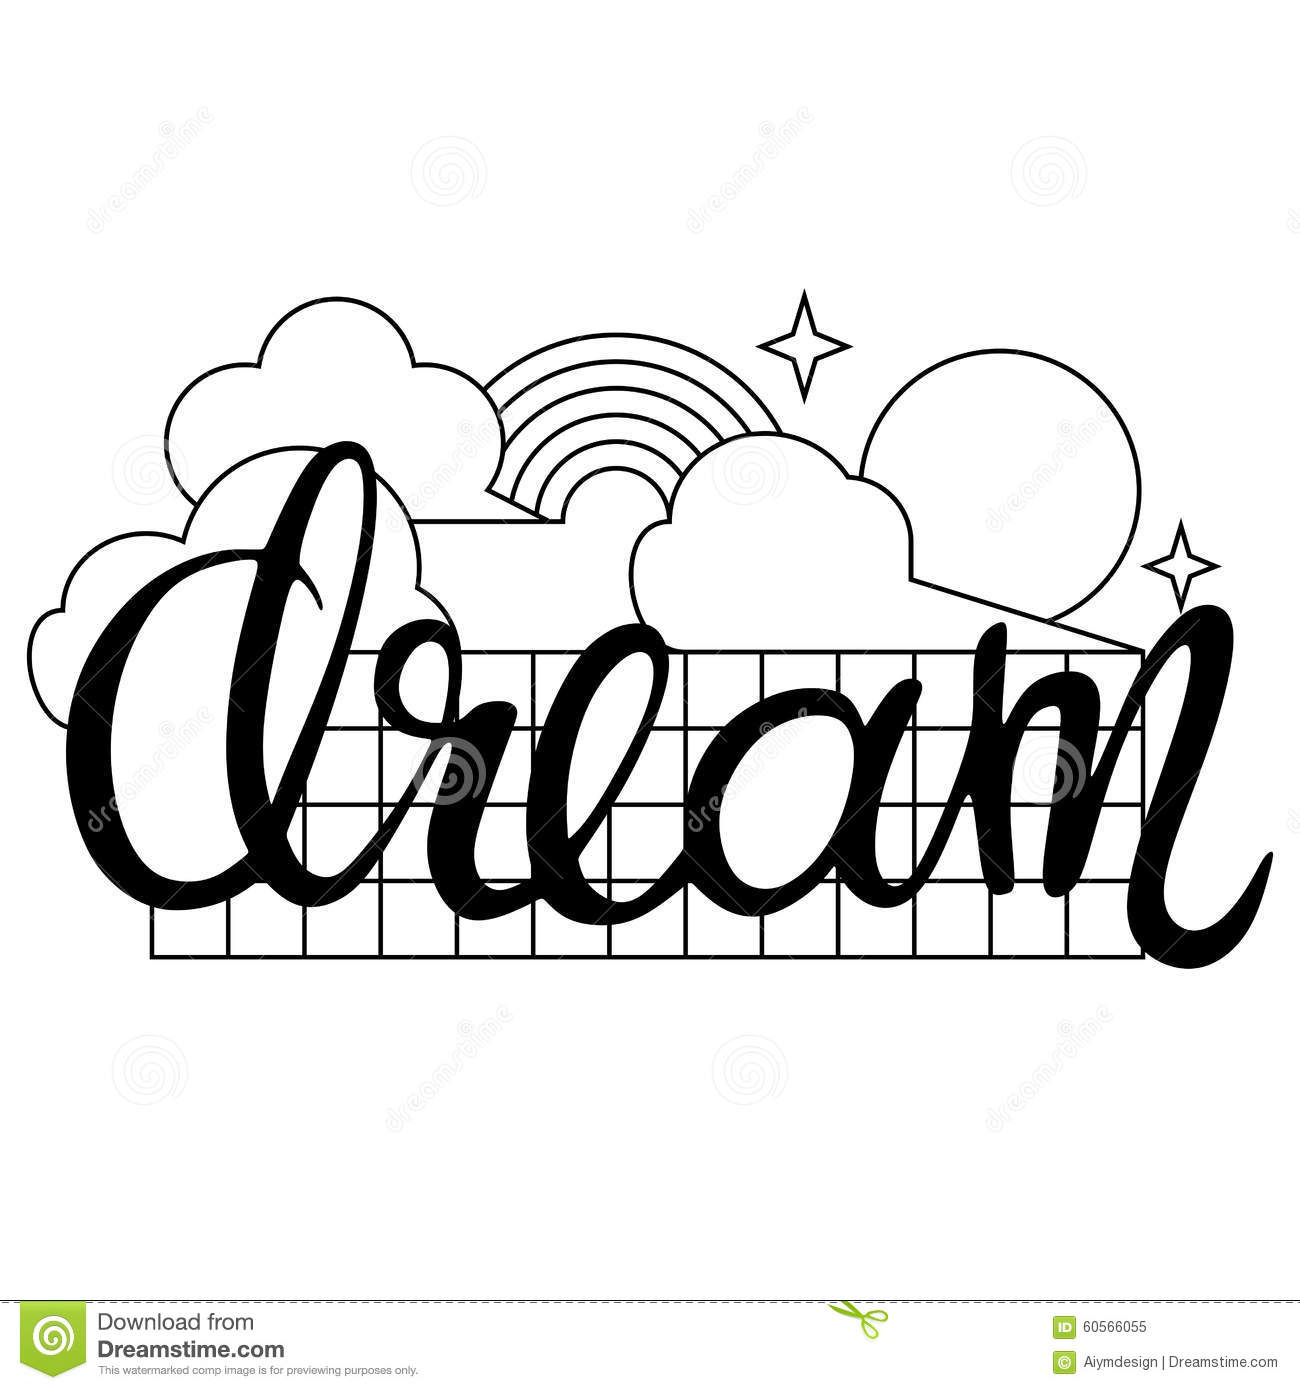 Dream Word Calligraphic Design With Clouds Sun Rainbow And Stars In Linear Style On White Background